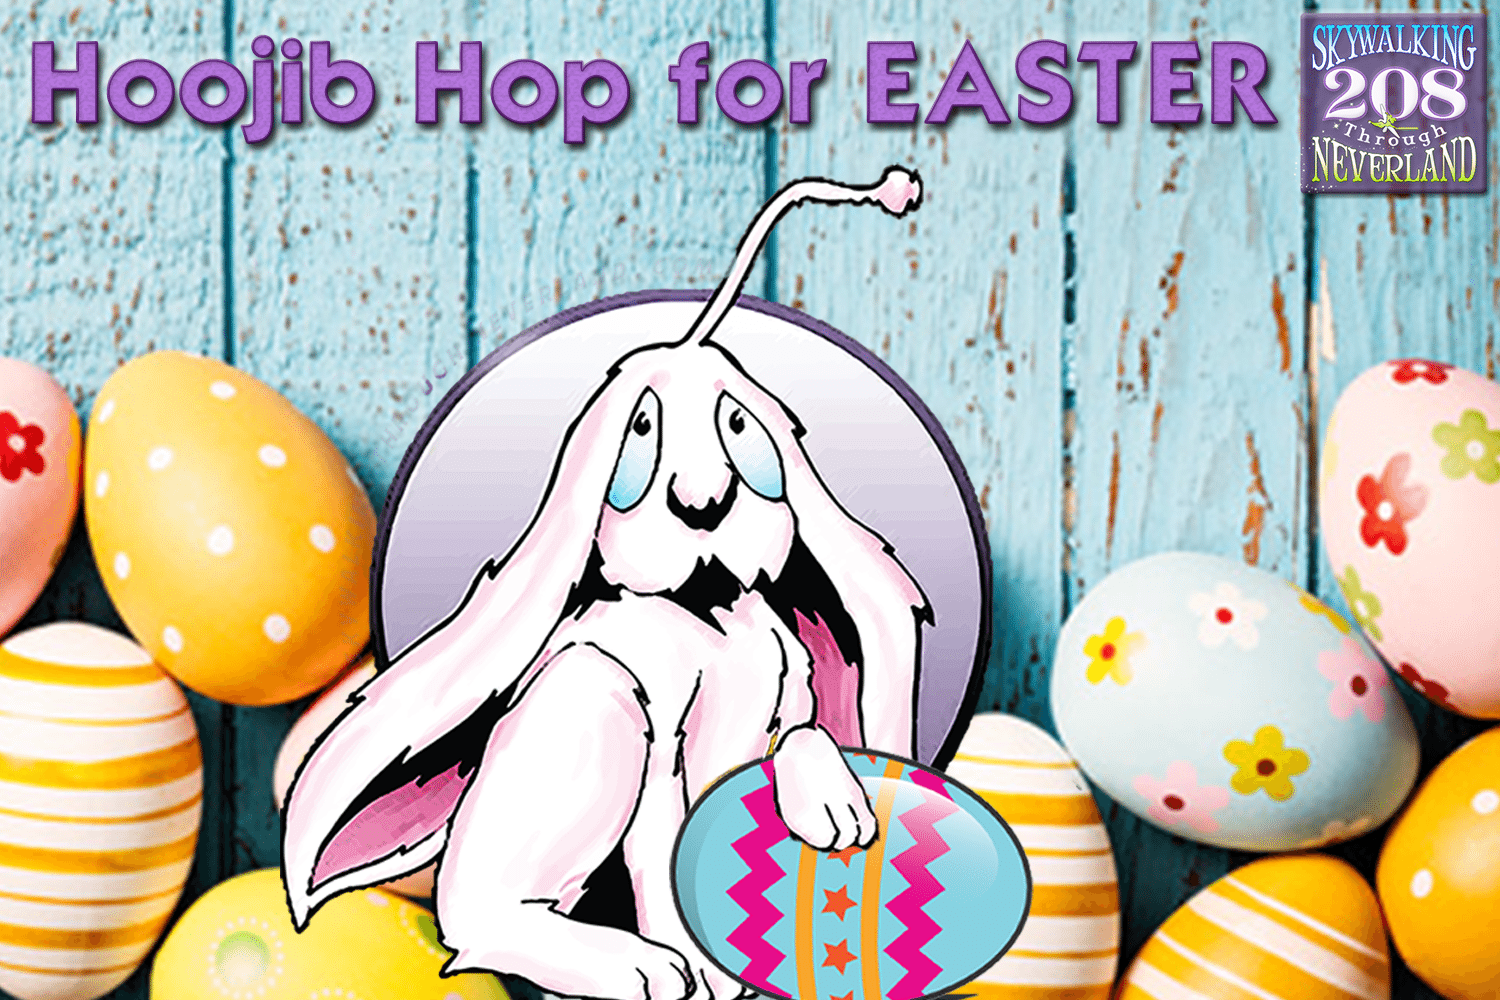 Skywalking Through Neverland #208: Hoojib Hop for Easter!